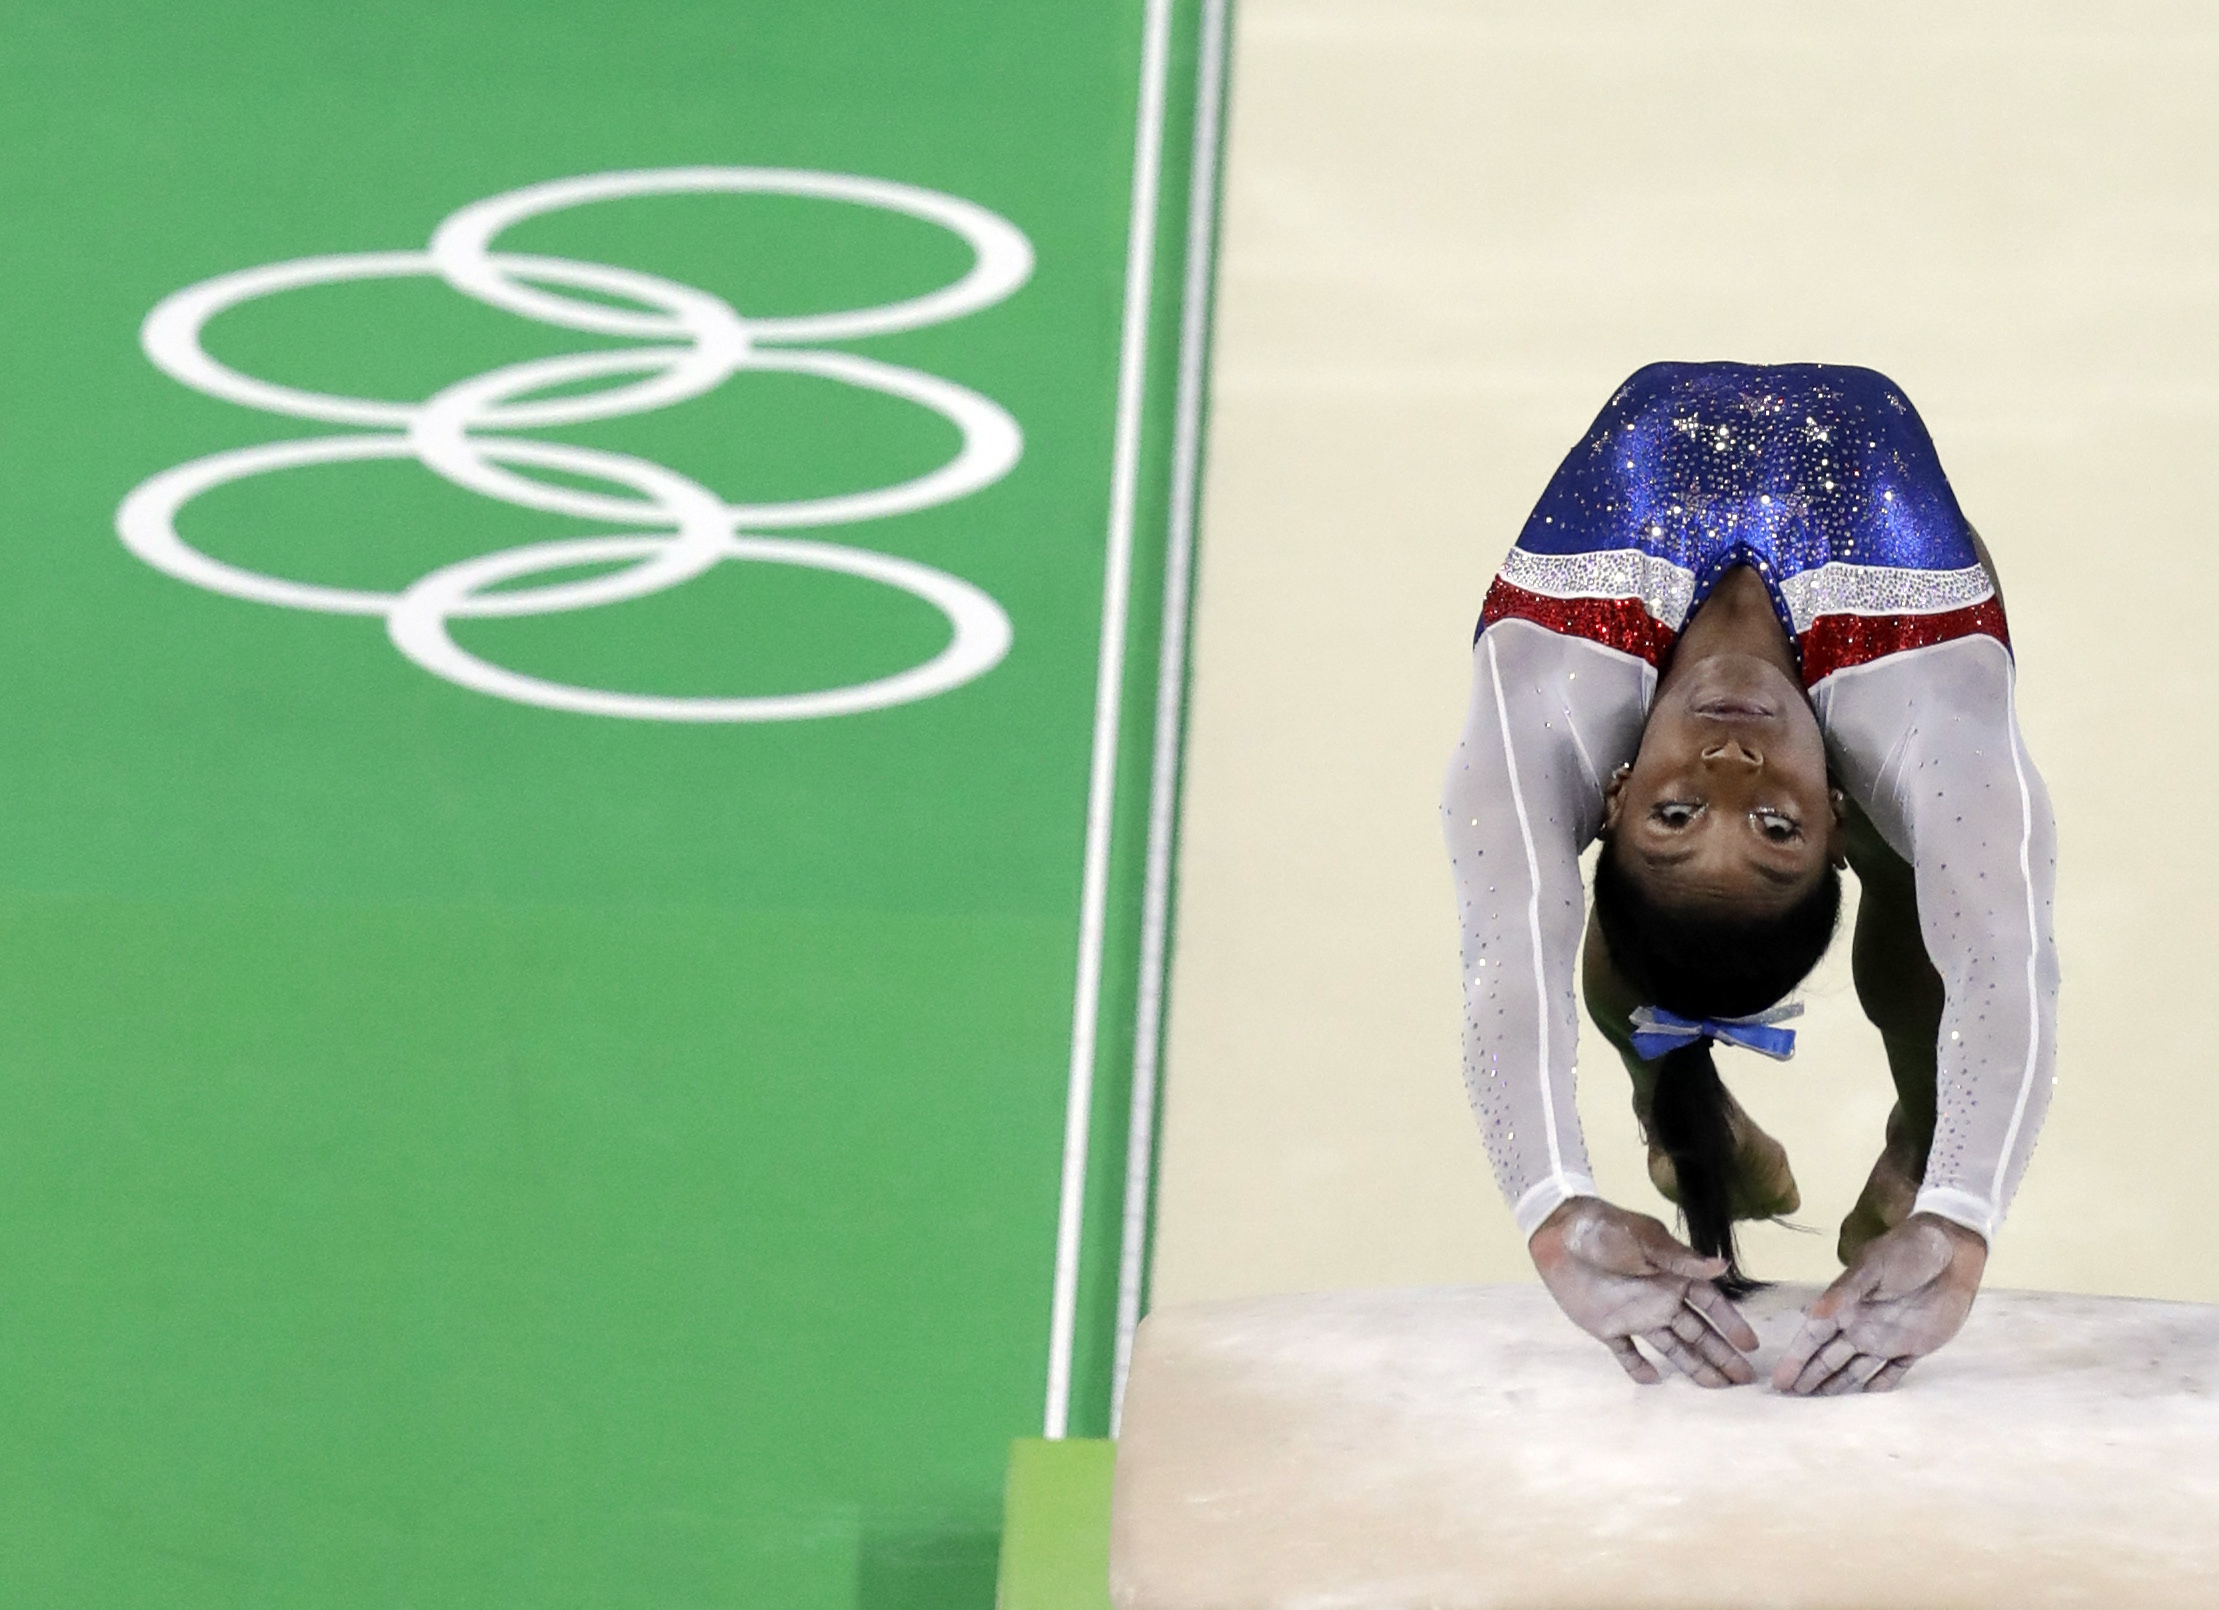 FILE - In this Aug. 11. 2016 file photo, United States' Simone Biles performs on the vault during the artistic gymnastics women's individual all-around final at the 2016 Summer Olympics in Rio de Janeiro, Brazil. Biles goes for her third gold in Rio when